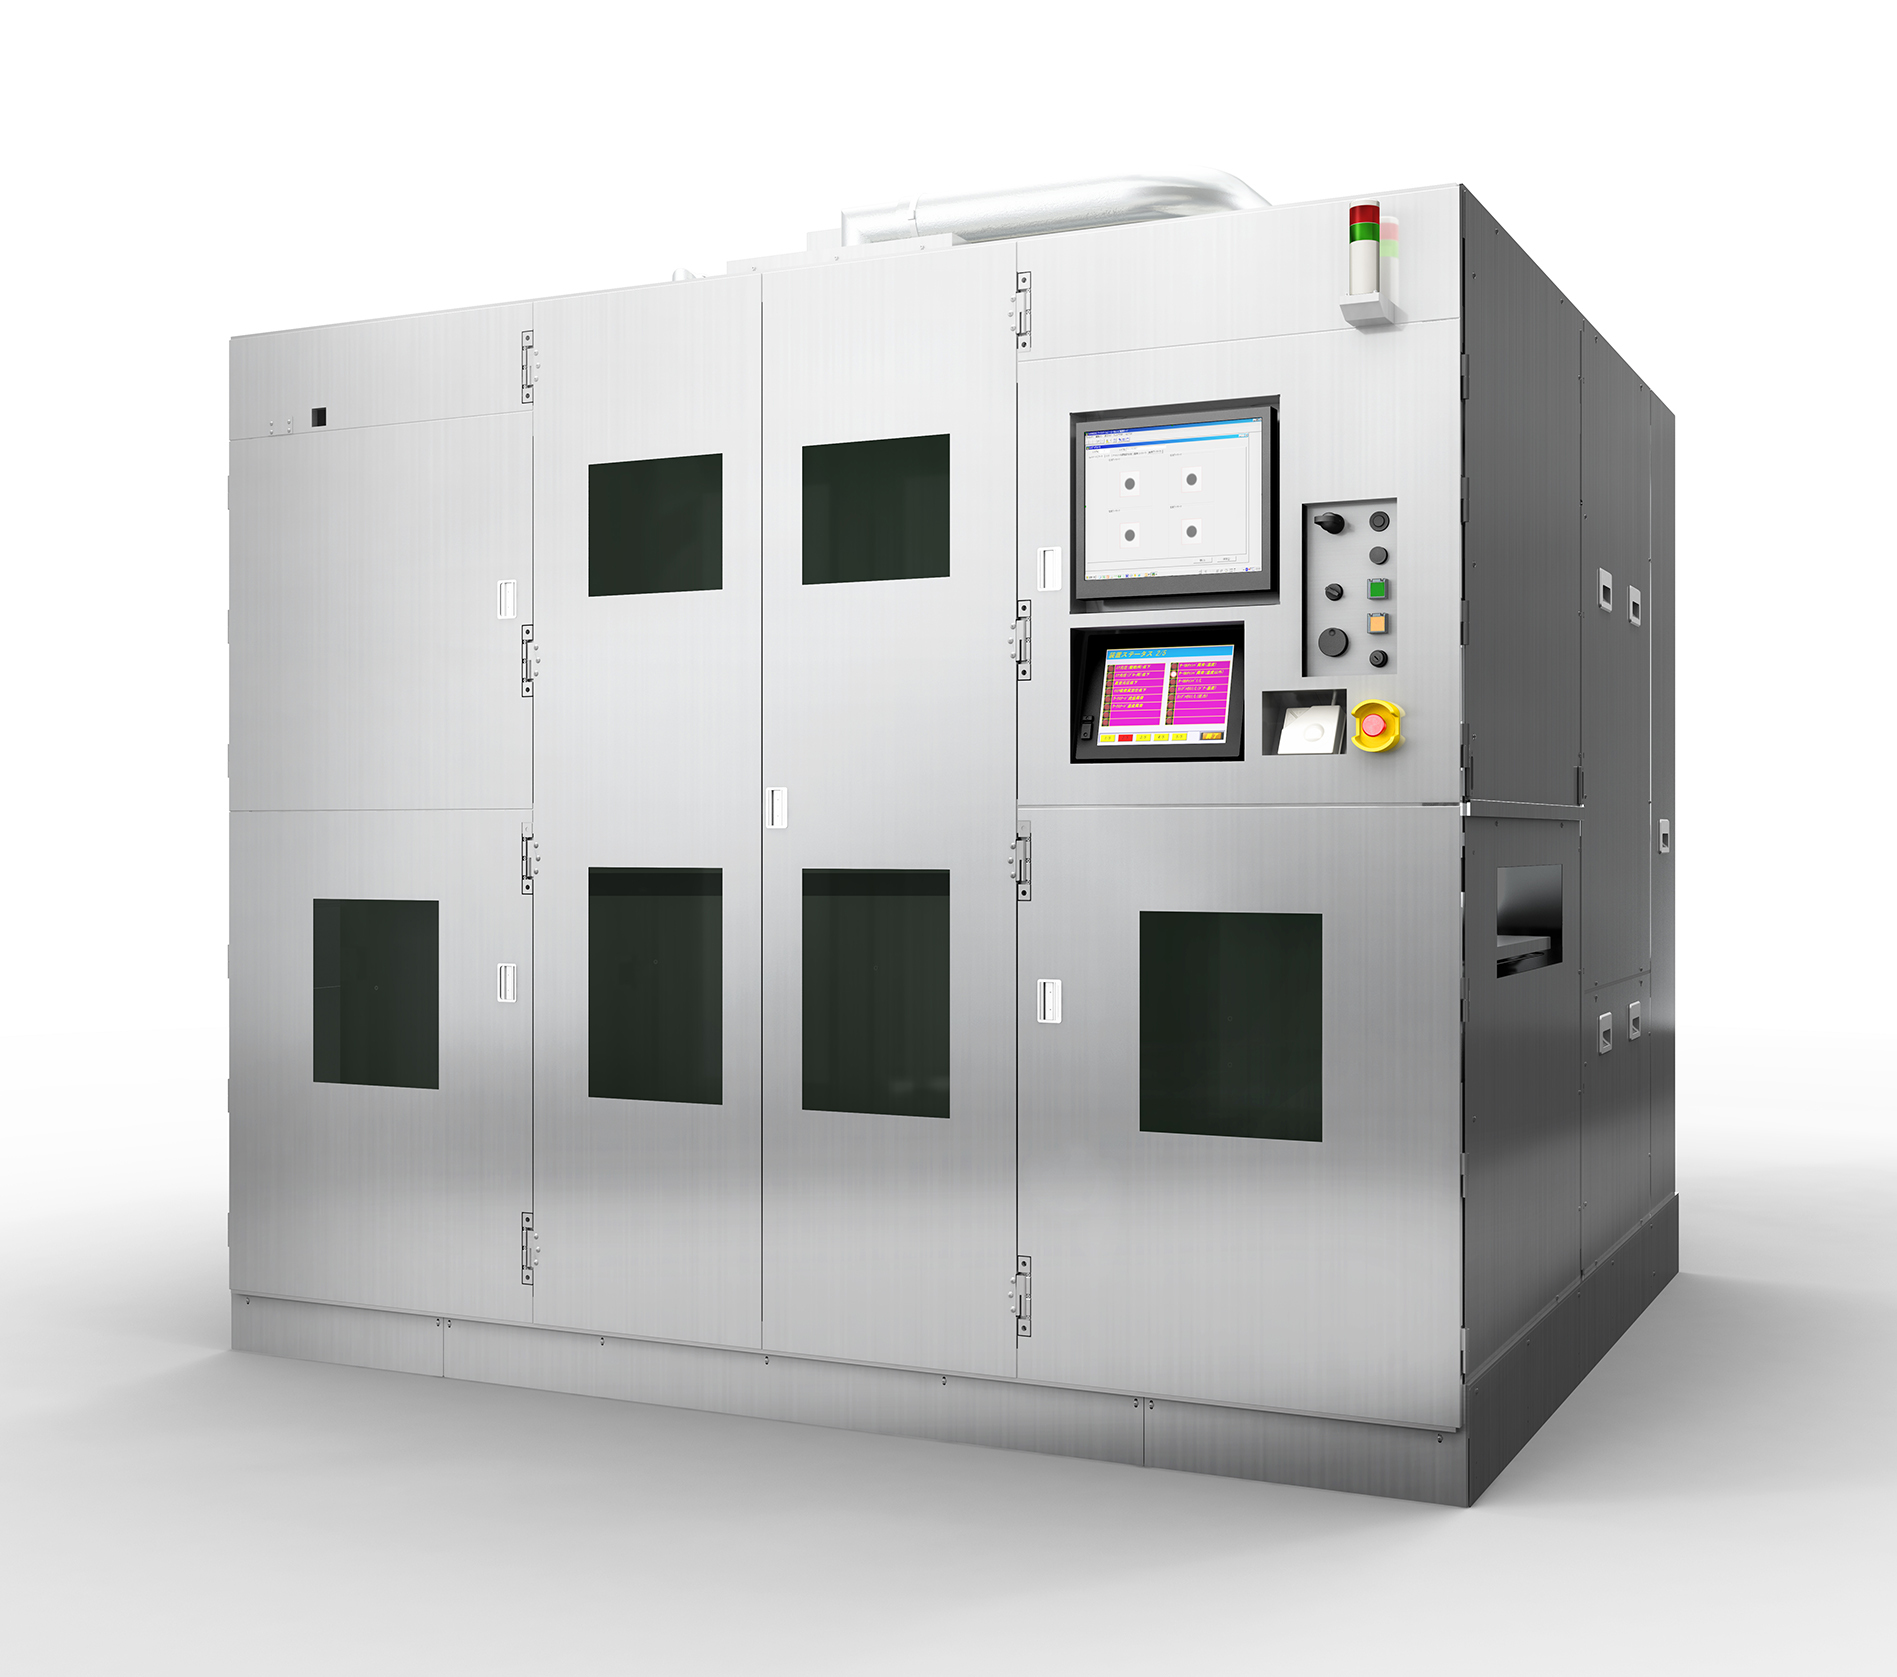 """USHIO Will Present at JPCA Show 2013 Its Newly Developed Direct Imaging  System """"UDI Series"""" for Manufacturing Printed-Circuit Boards 